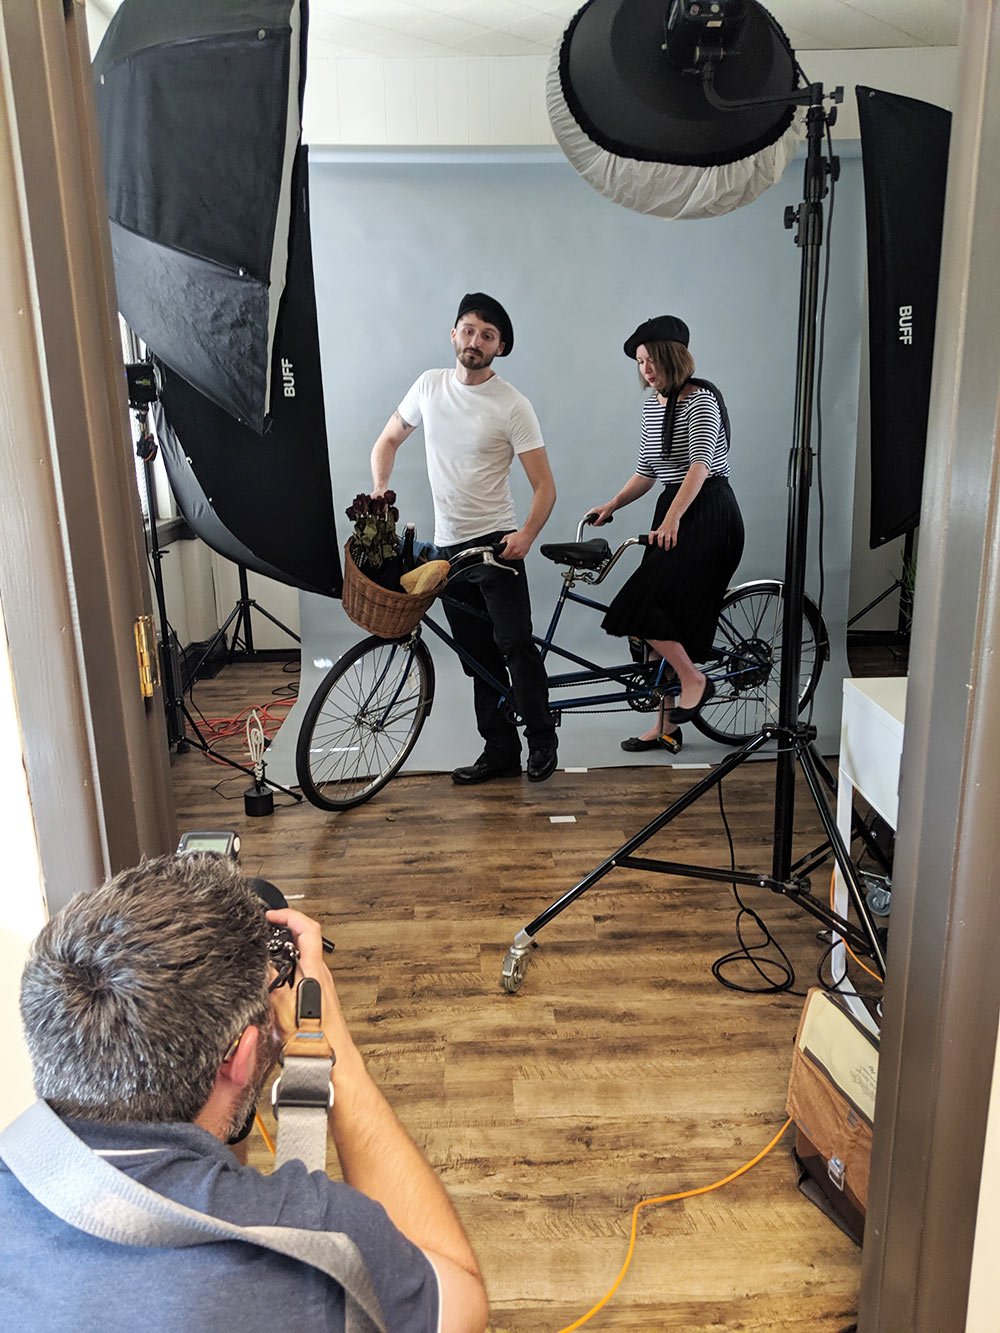 Photoshoot using a tandem bicycle